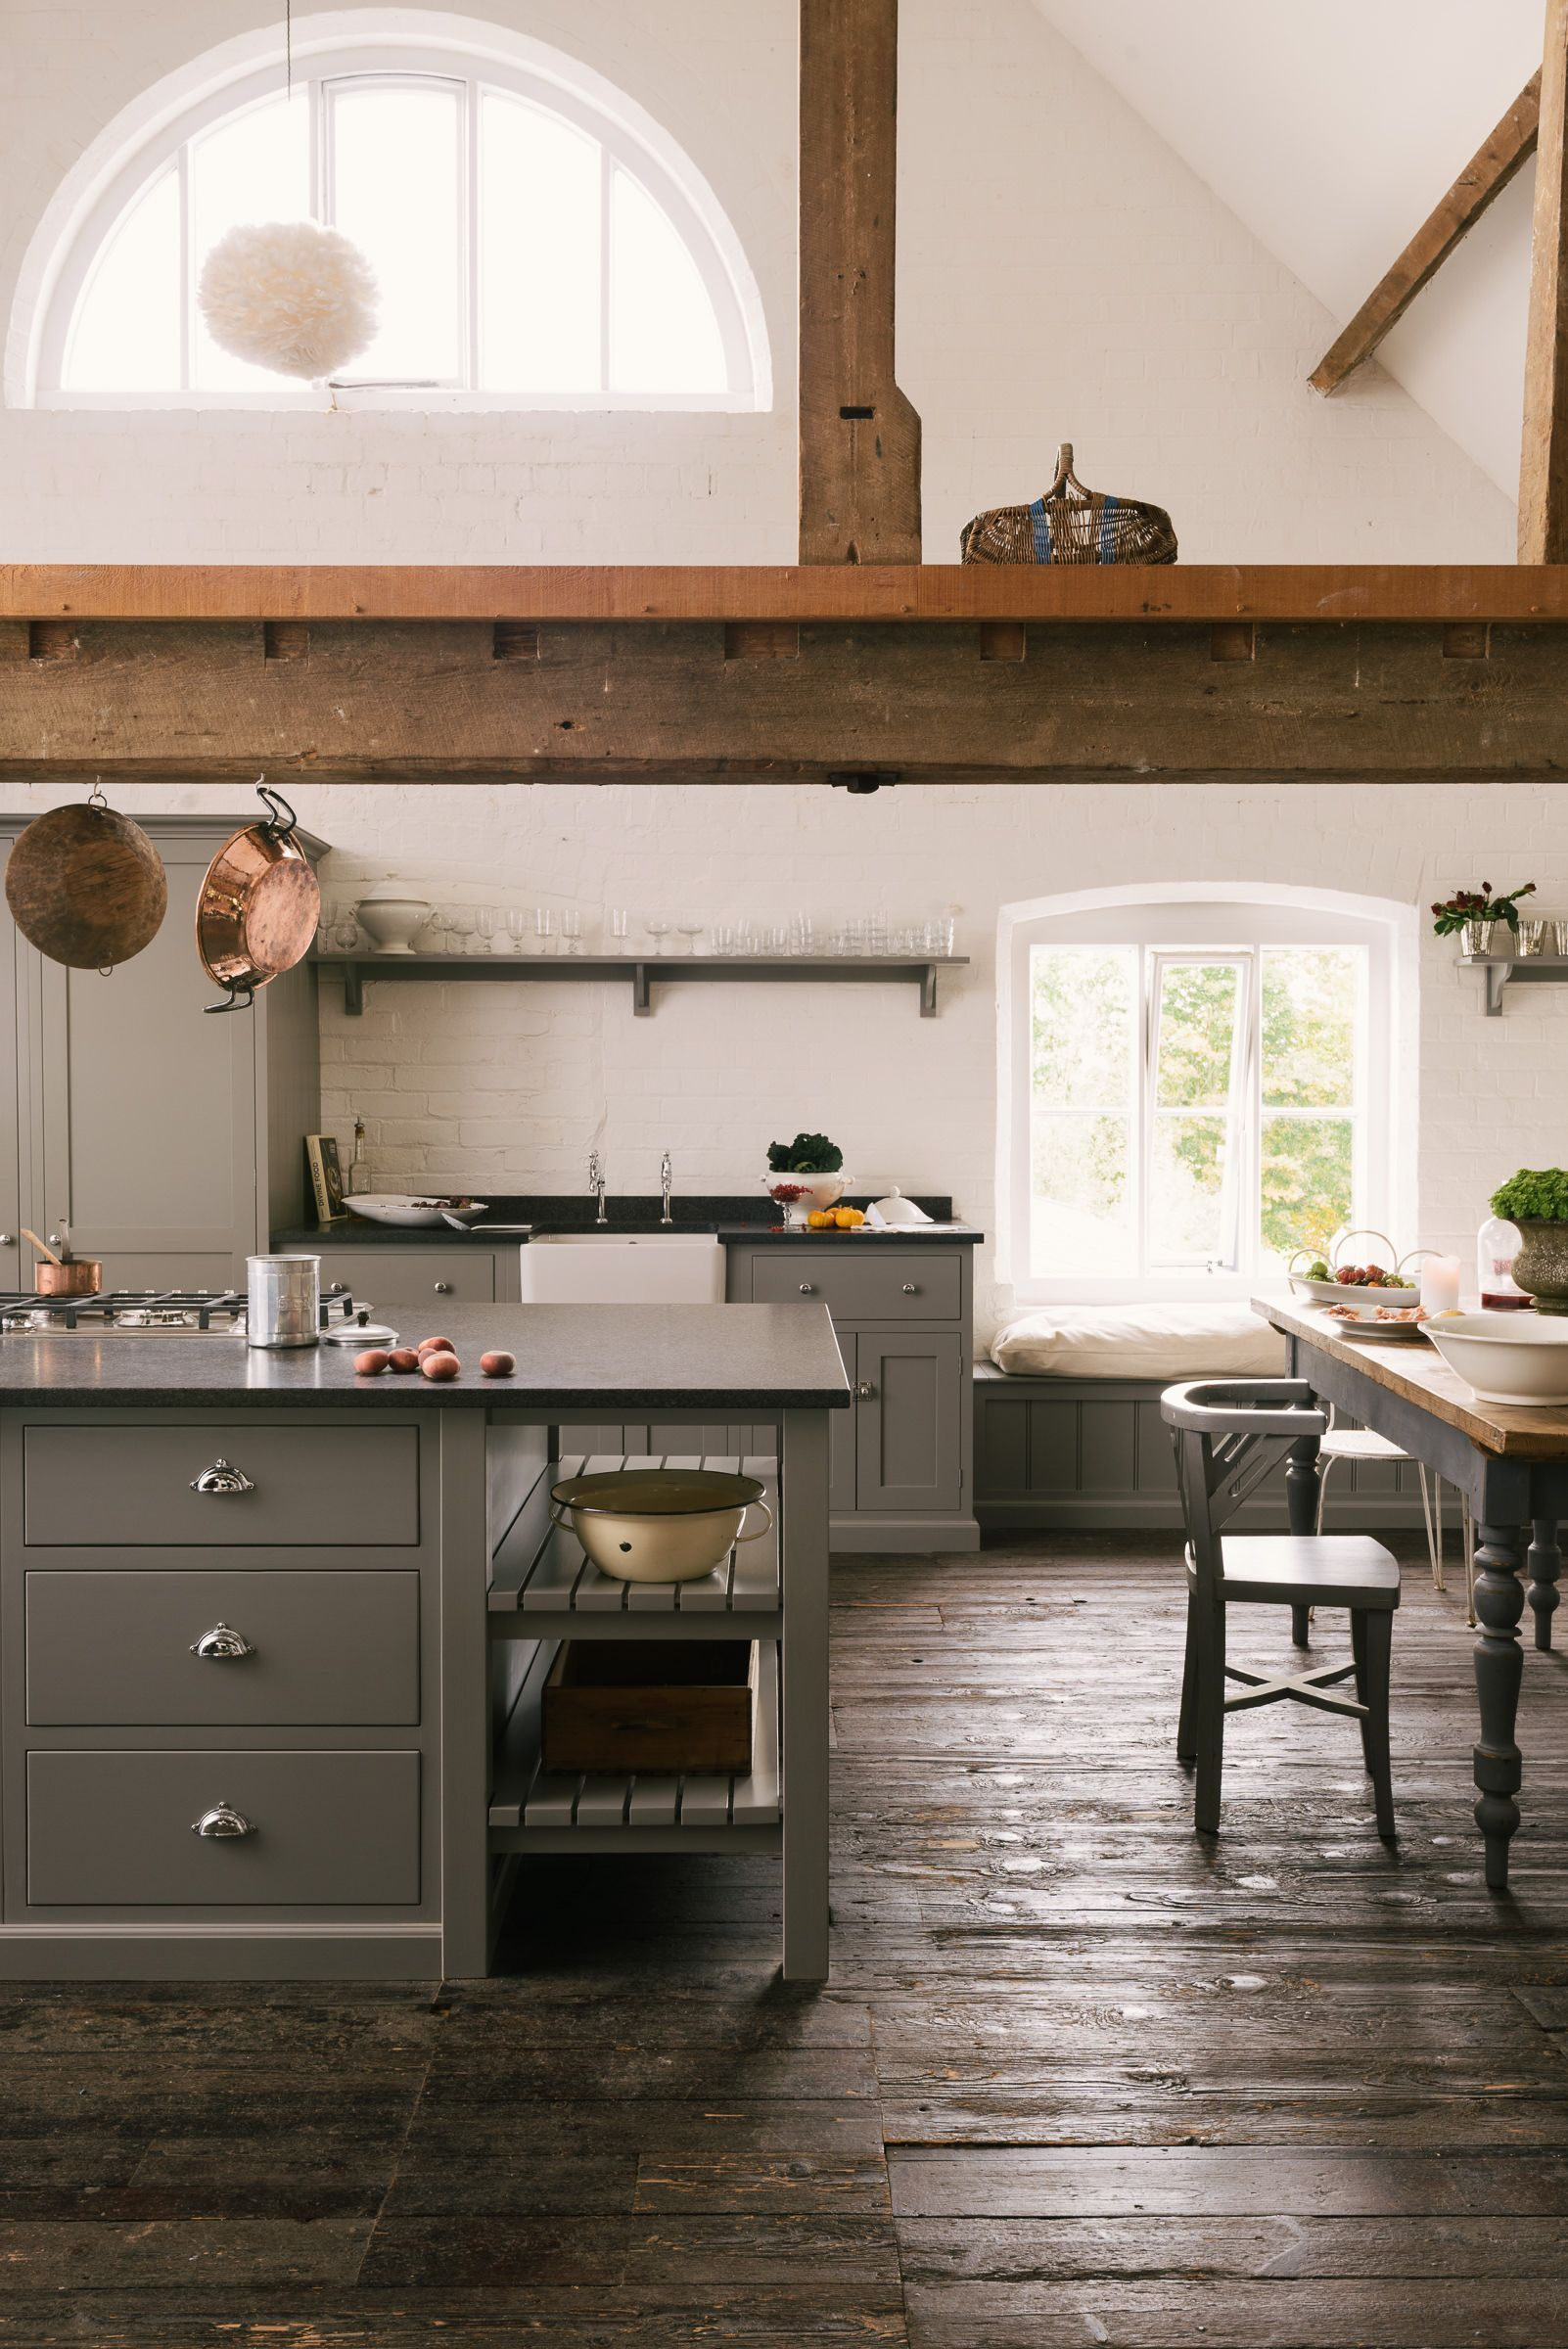 browse through our incredible collection of luxury kitchen designs ideas and pictures loft on kitchen decor themes rustic id=17788